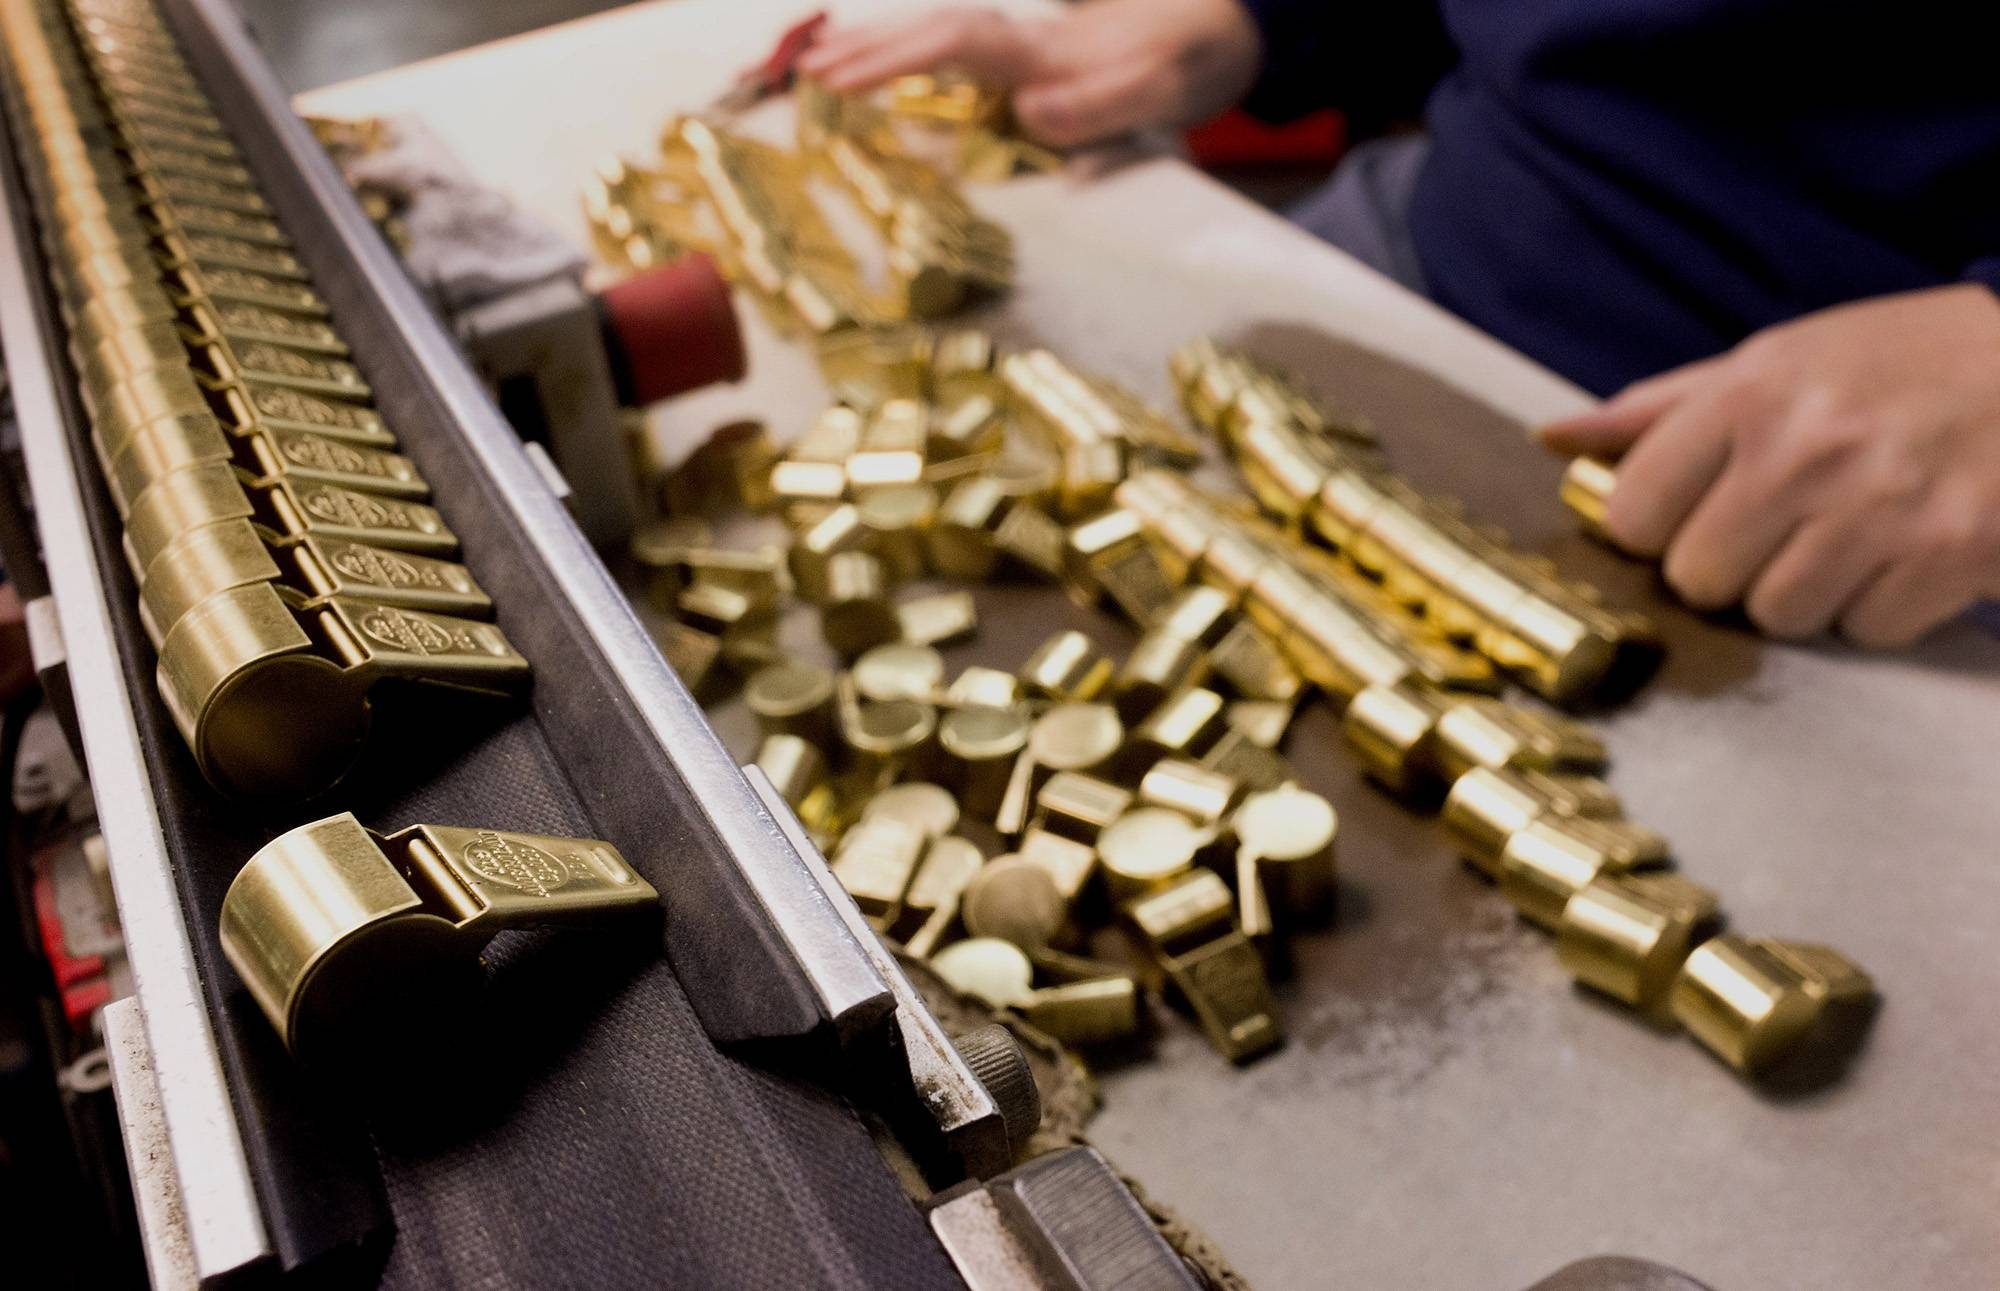 A worker lines brass pieces of whistles onto a conveyor belt for the soldering machine at the American Whistle Corp. factory in Columbus, Ohio, on Feb. 3. Amercians are holding multiple jobs to earn extra income in a still-erratic job market, to supplement wages or to get paid for time they spend on hobbies or interests. About 4.9 percent of working U.S. adults have more than one job, with about half holding a full-time and a part-time position.